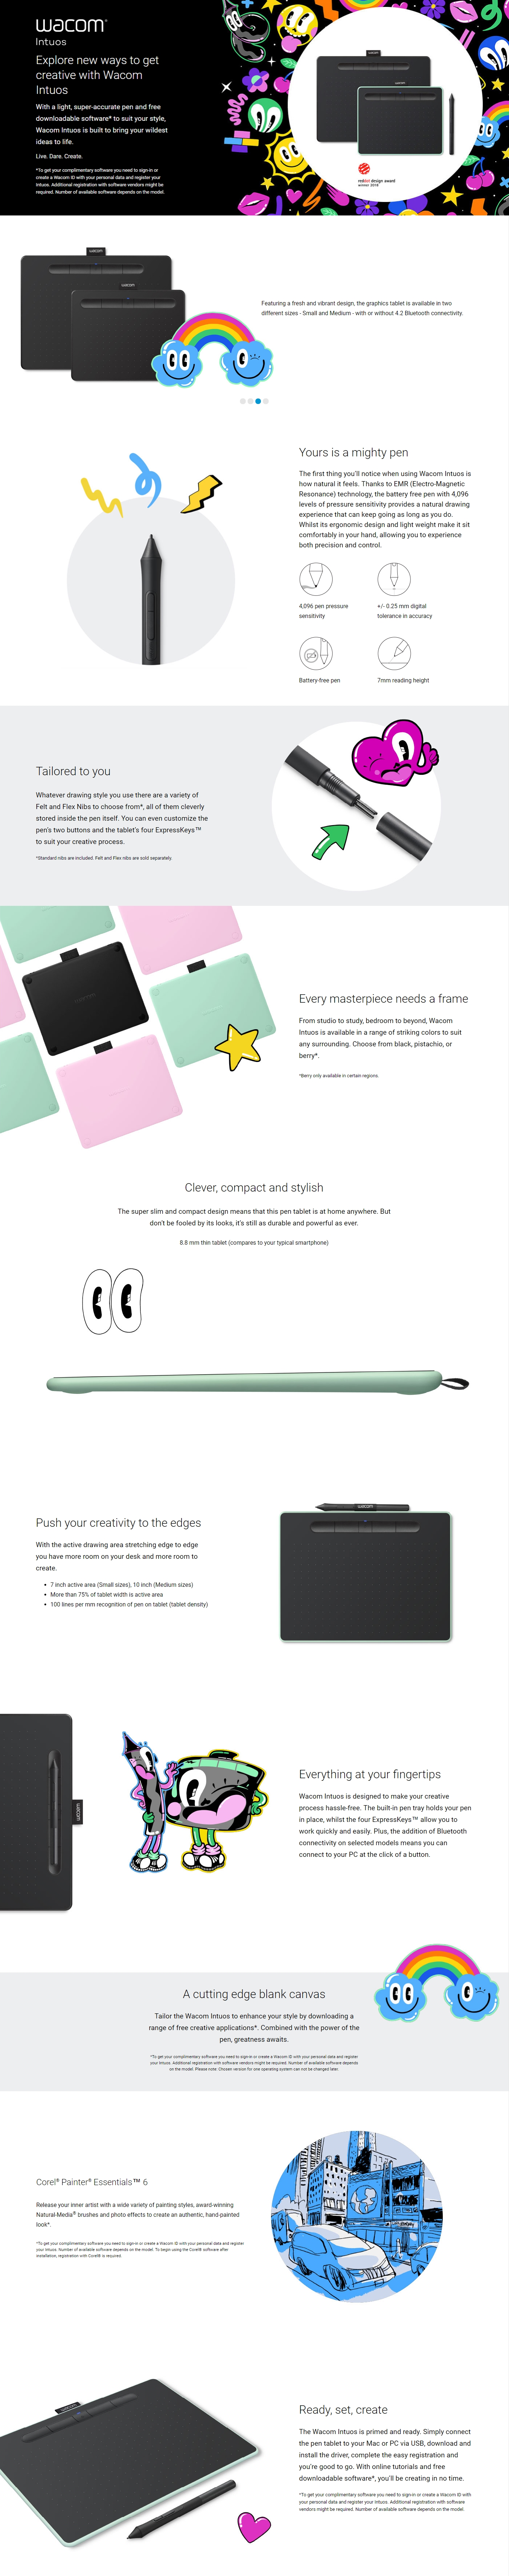 A large marketing image providing additional information about the product Wacom Intuos Medium Bluetooth Drawing Tablet - Black - Additional alt info not provided